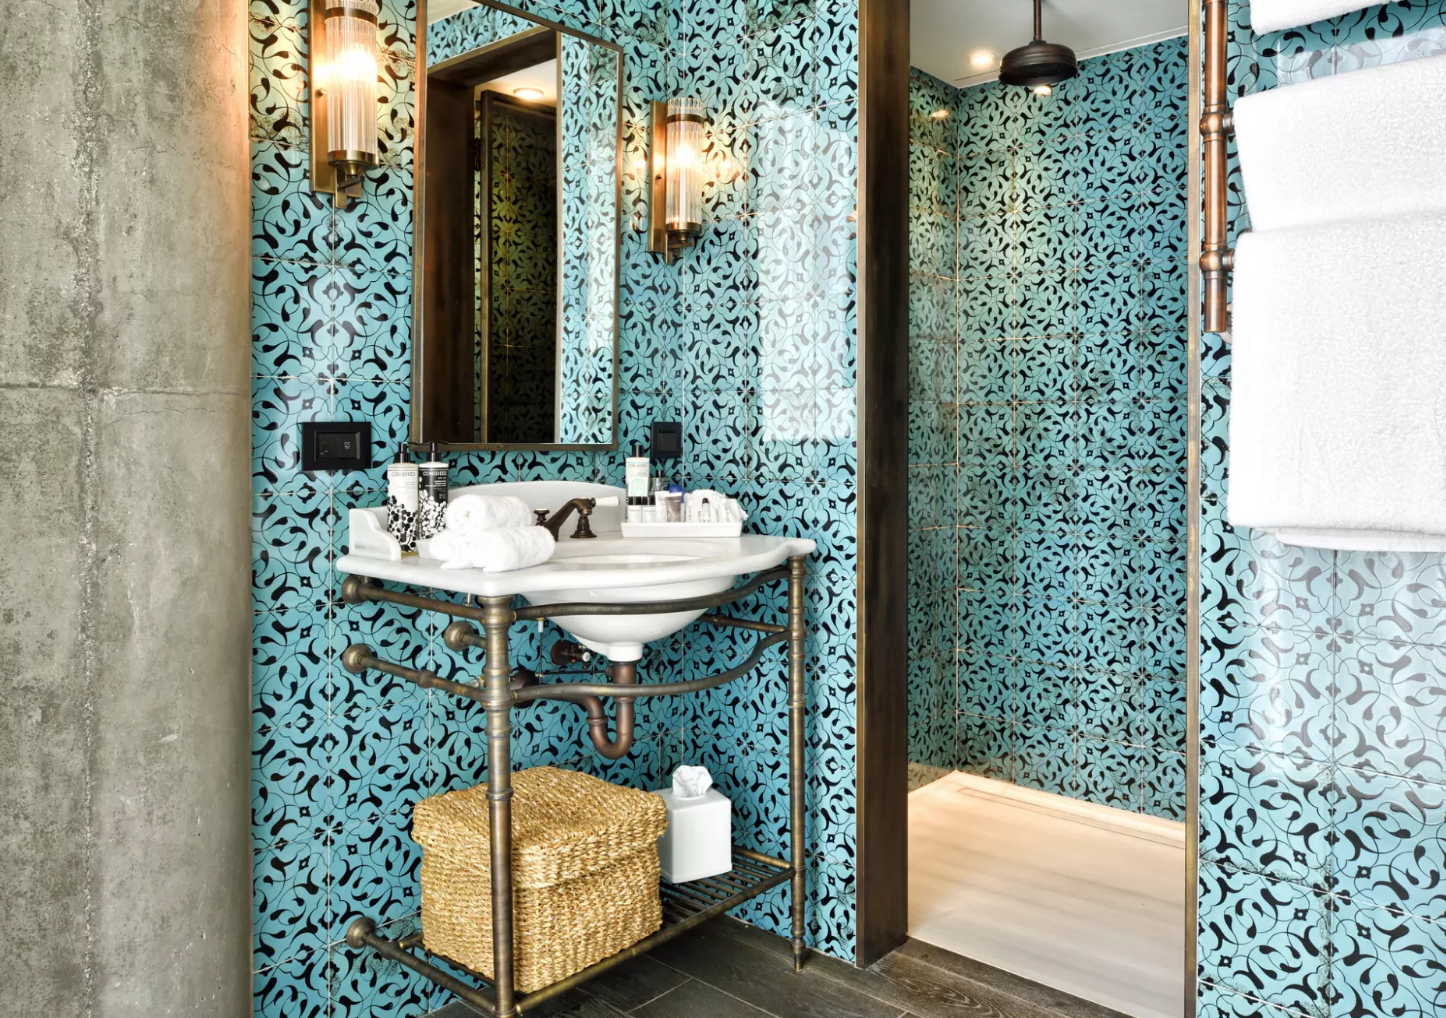 Soho House Tiles by Otto Tiles And Design, seen at Soho House Istanbul on Wescover